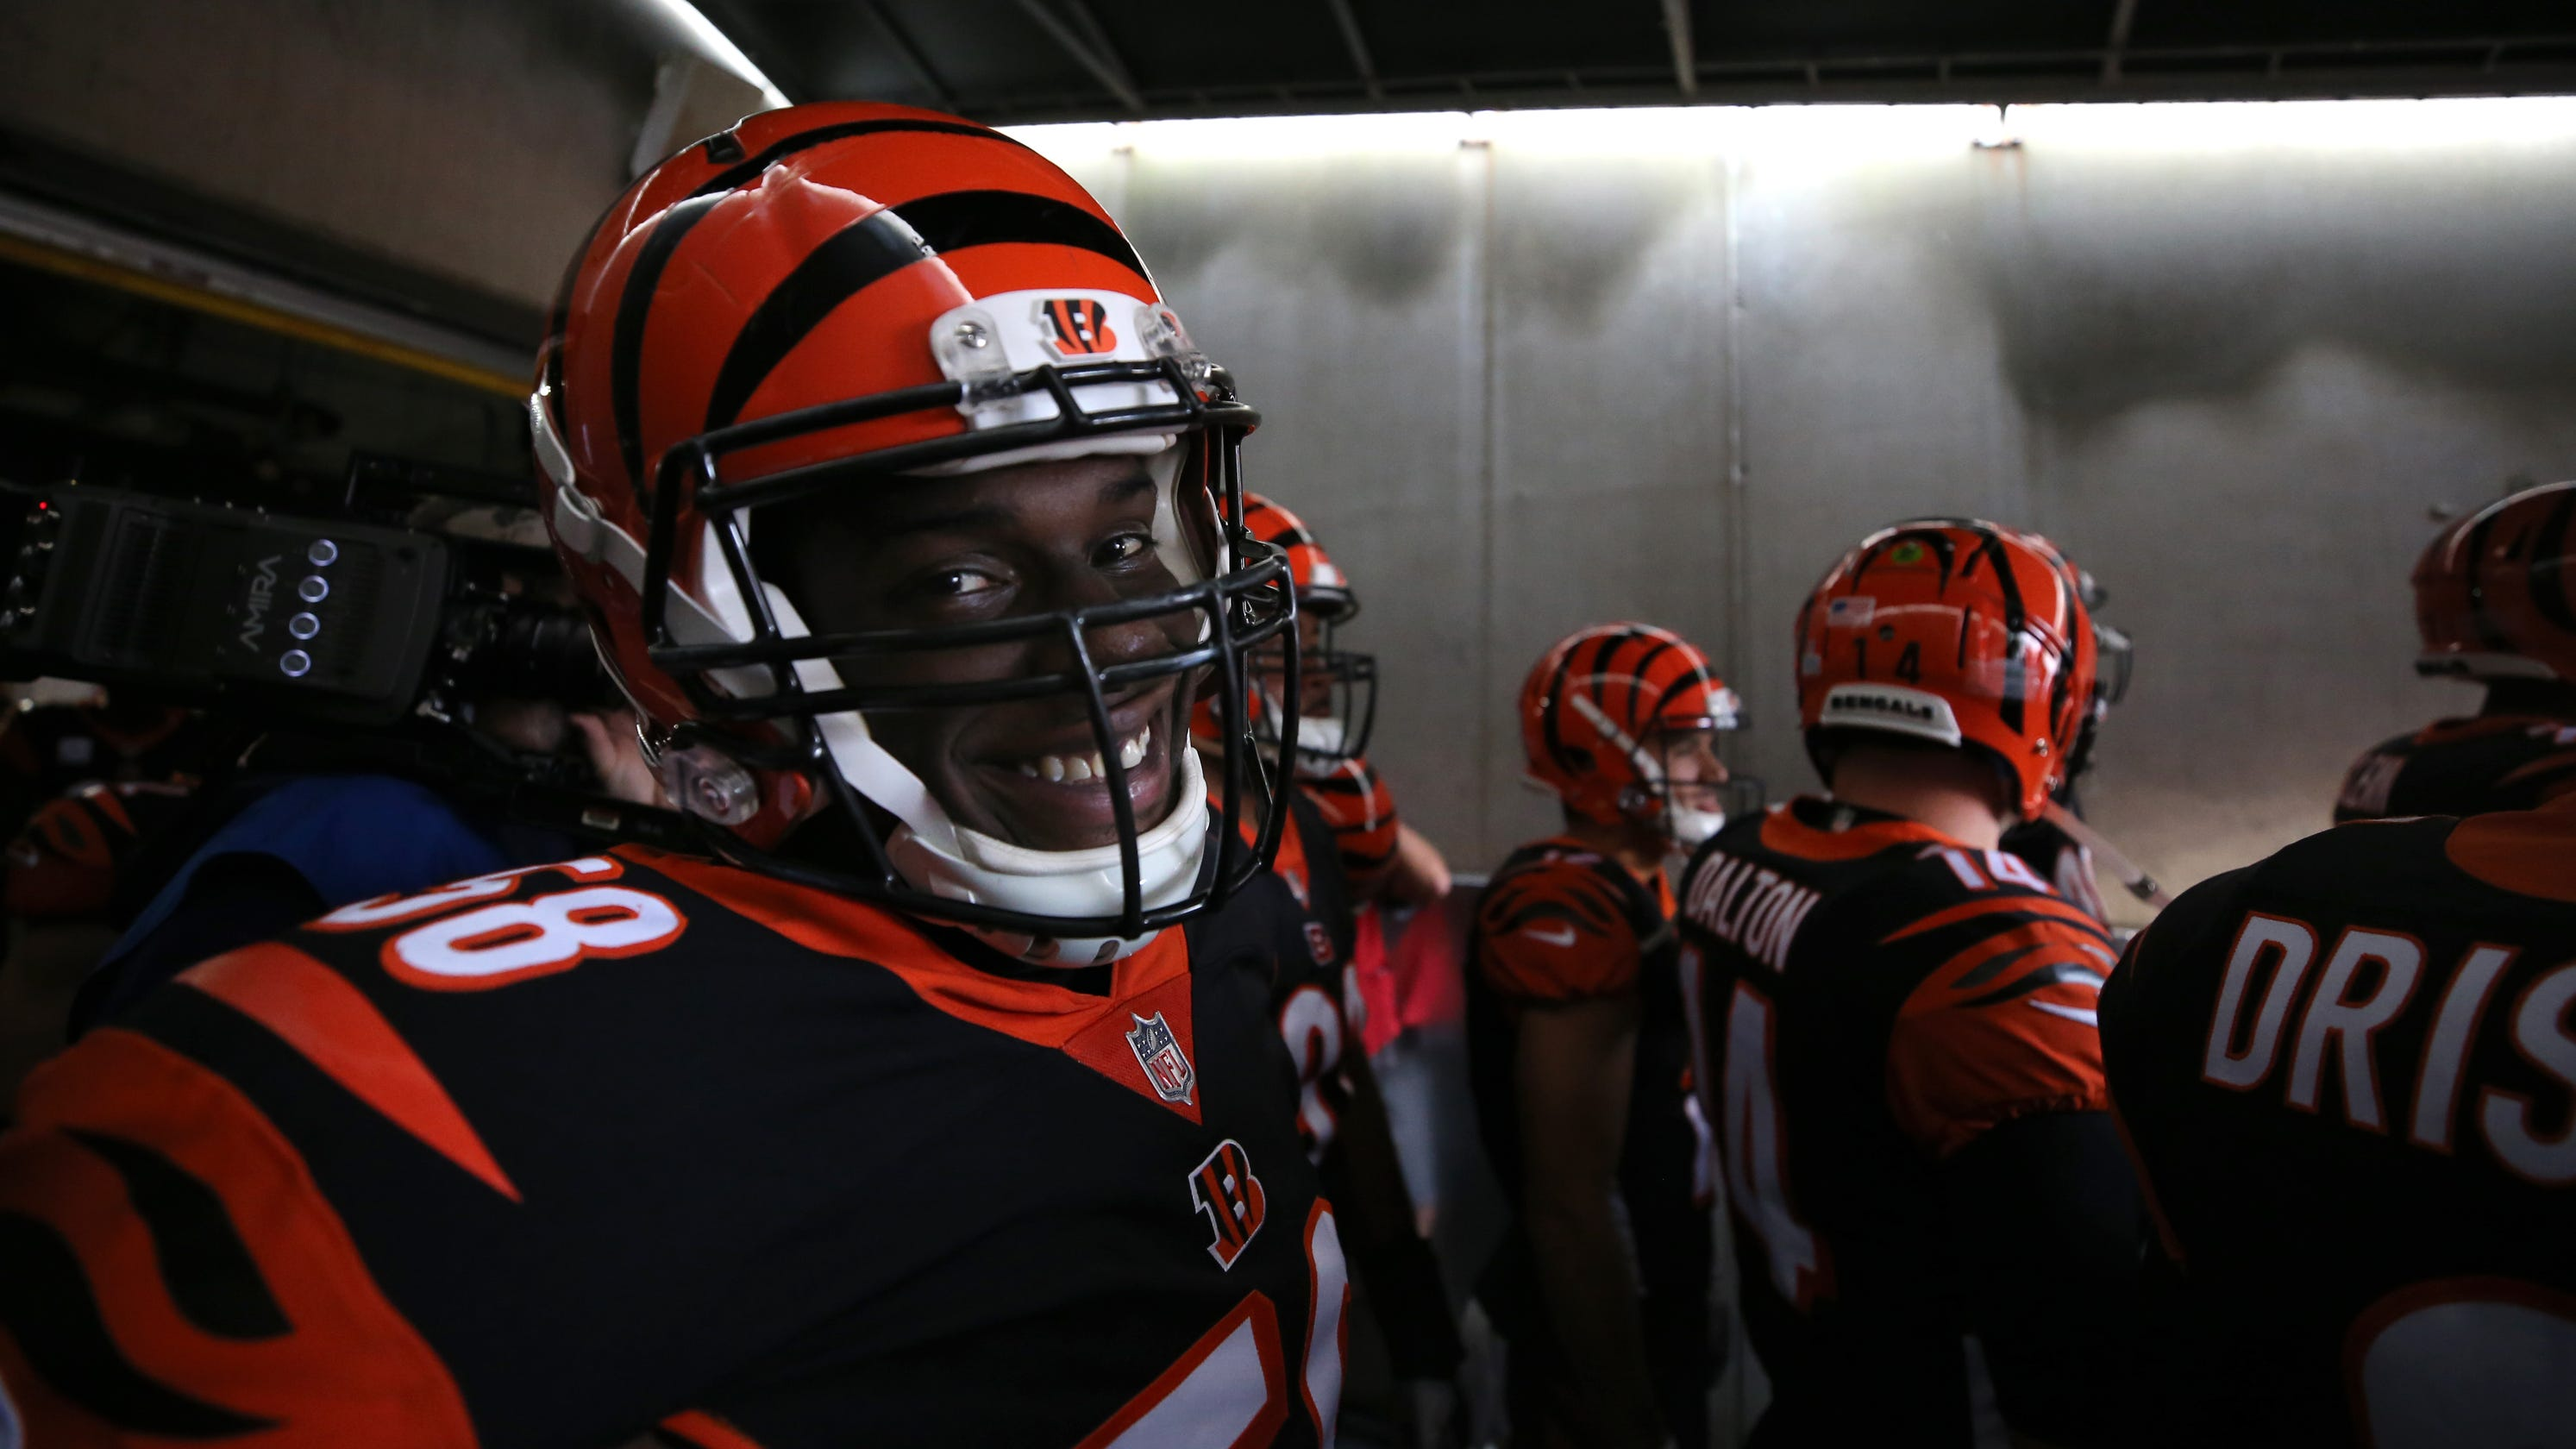 hot sales 867c3 f2cf9 Cincinnati Bengals vs. Tampa Bay Buccaneers: TV, odds ...